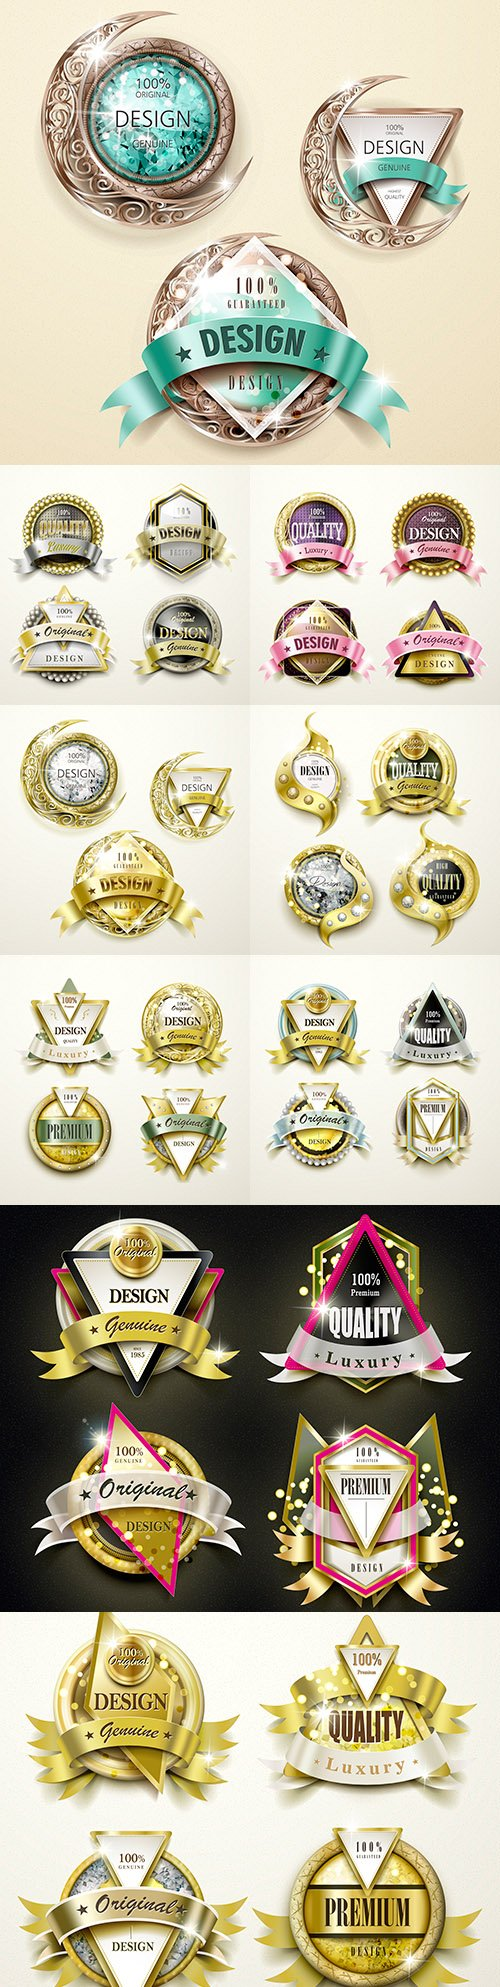 Premium luxury gold and jewelry label collection